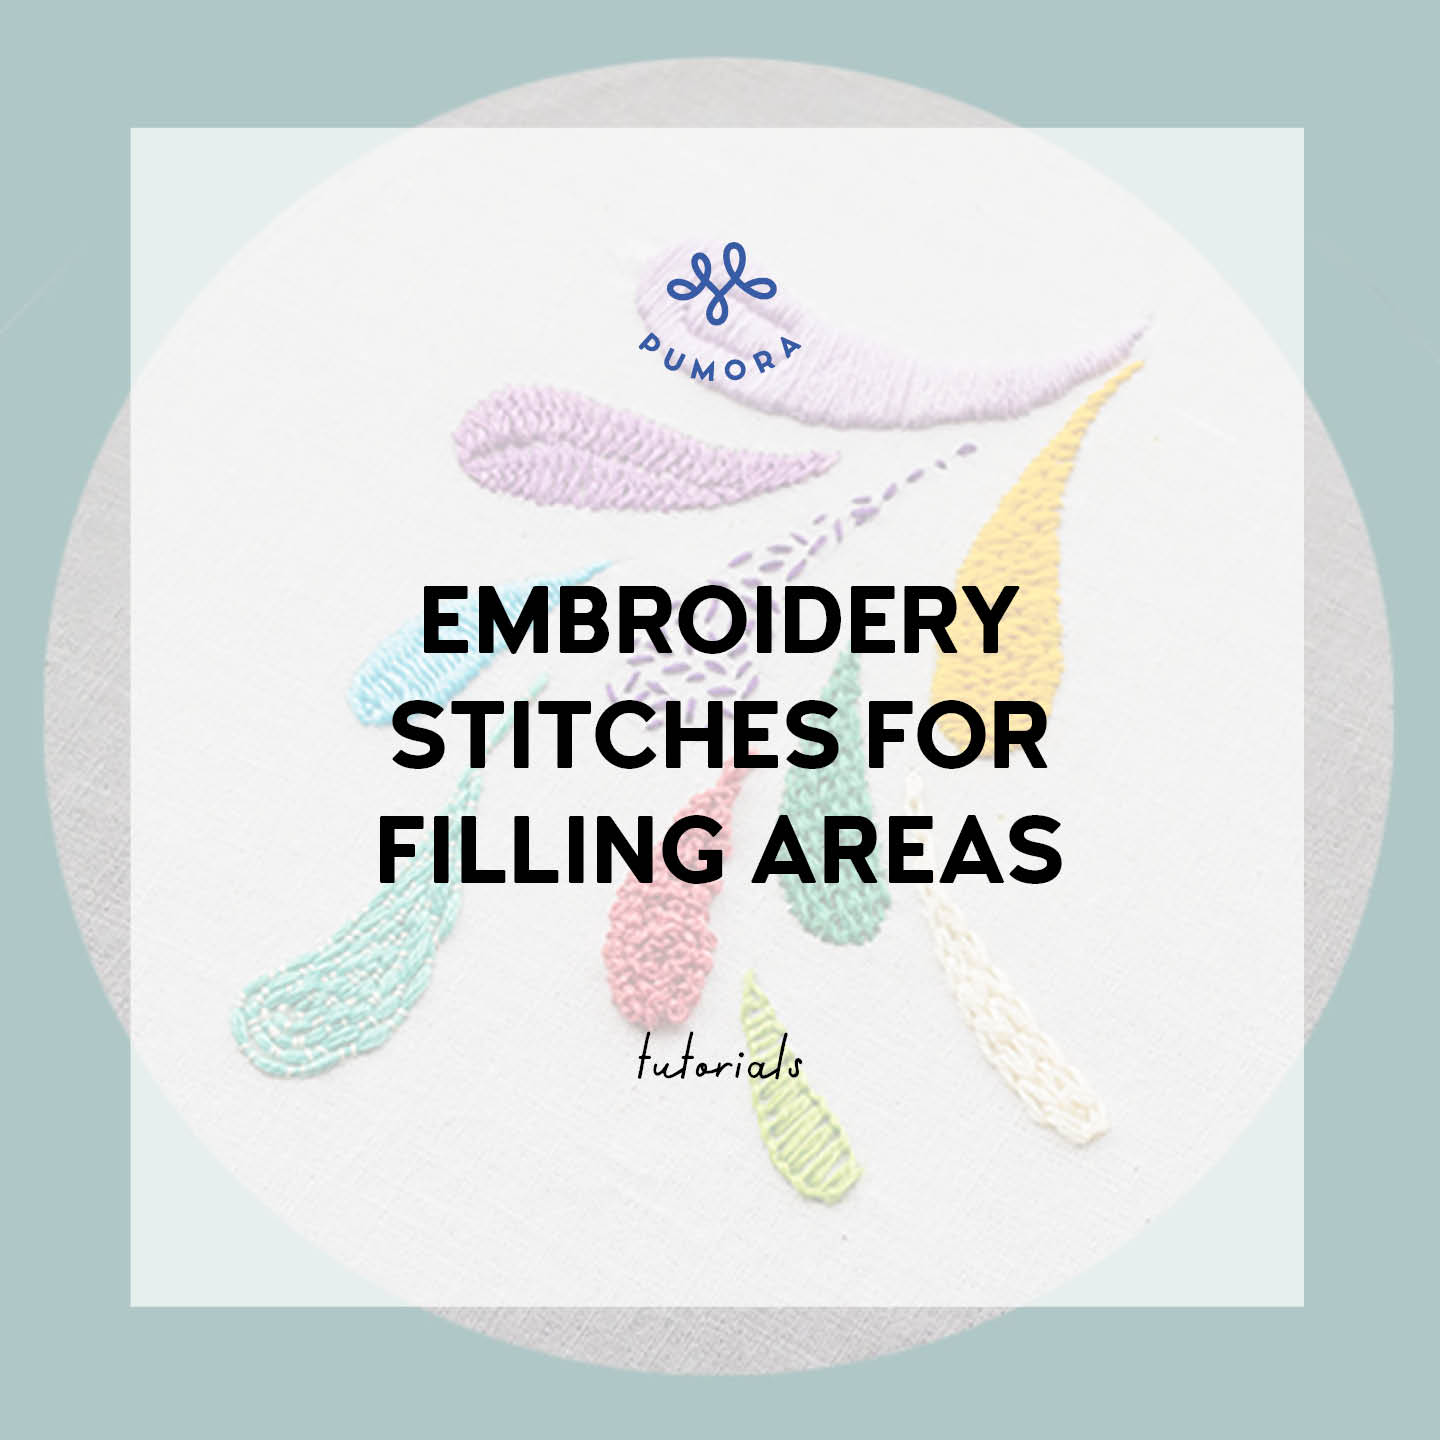 The best embroidery stitches for filling areas - Pumora